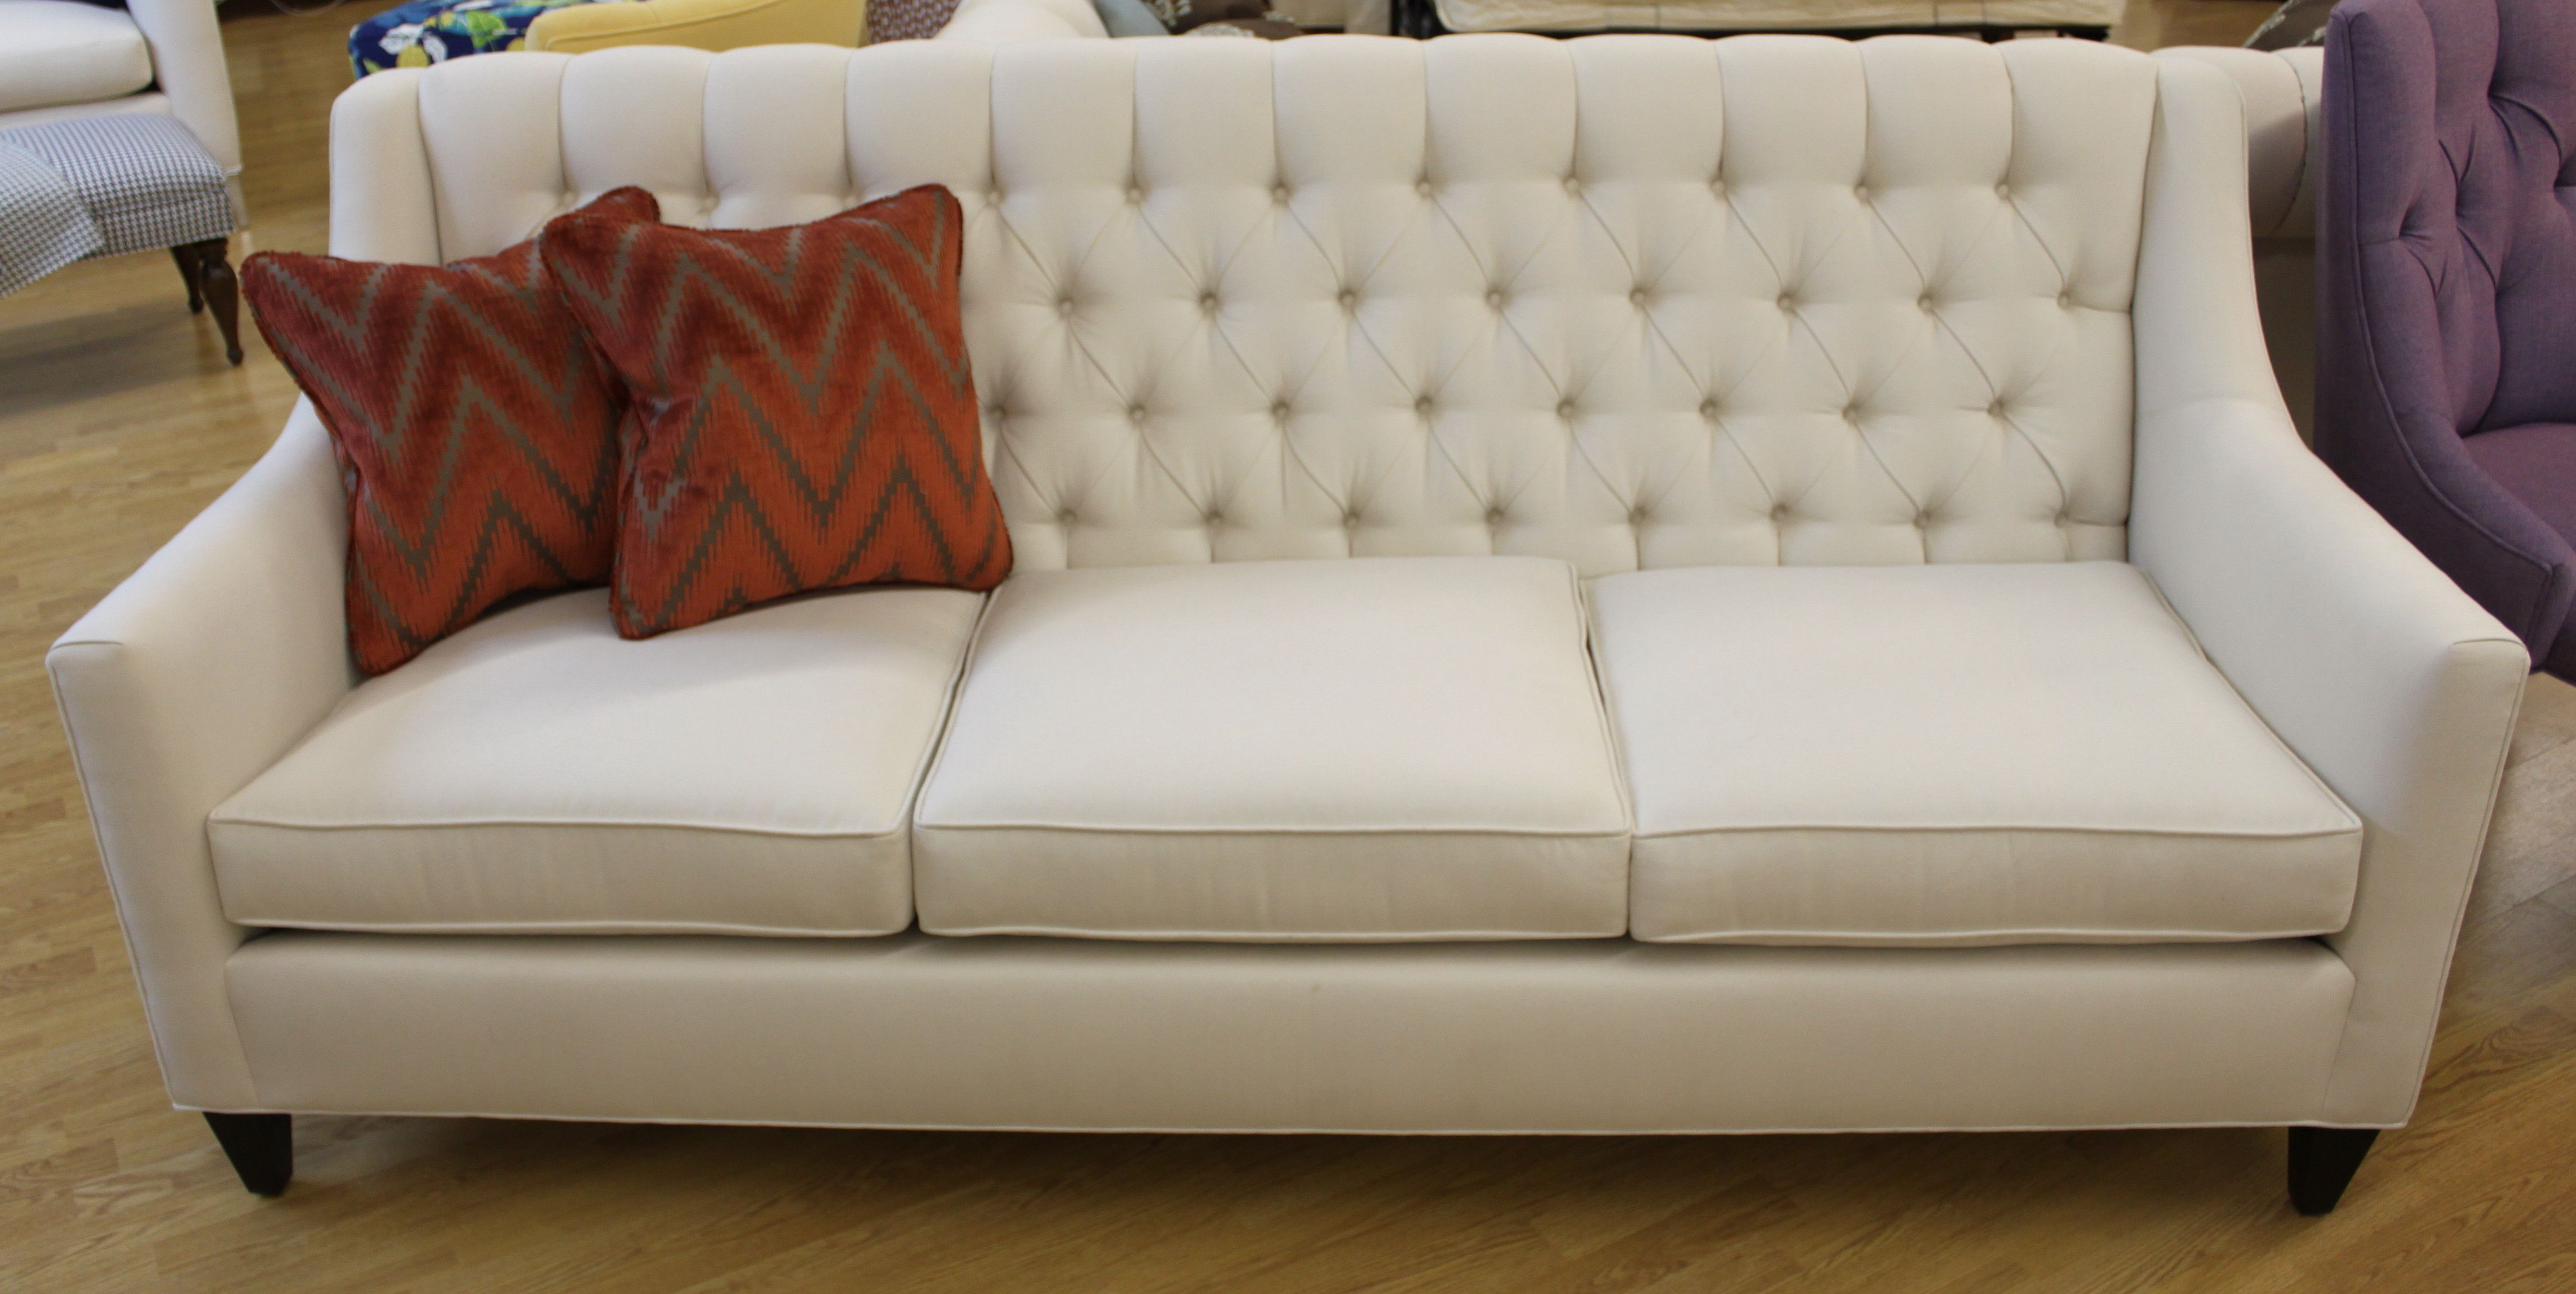 Choosing The Best Couch Styles For Your House